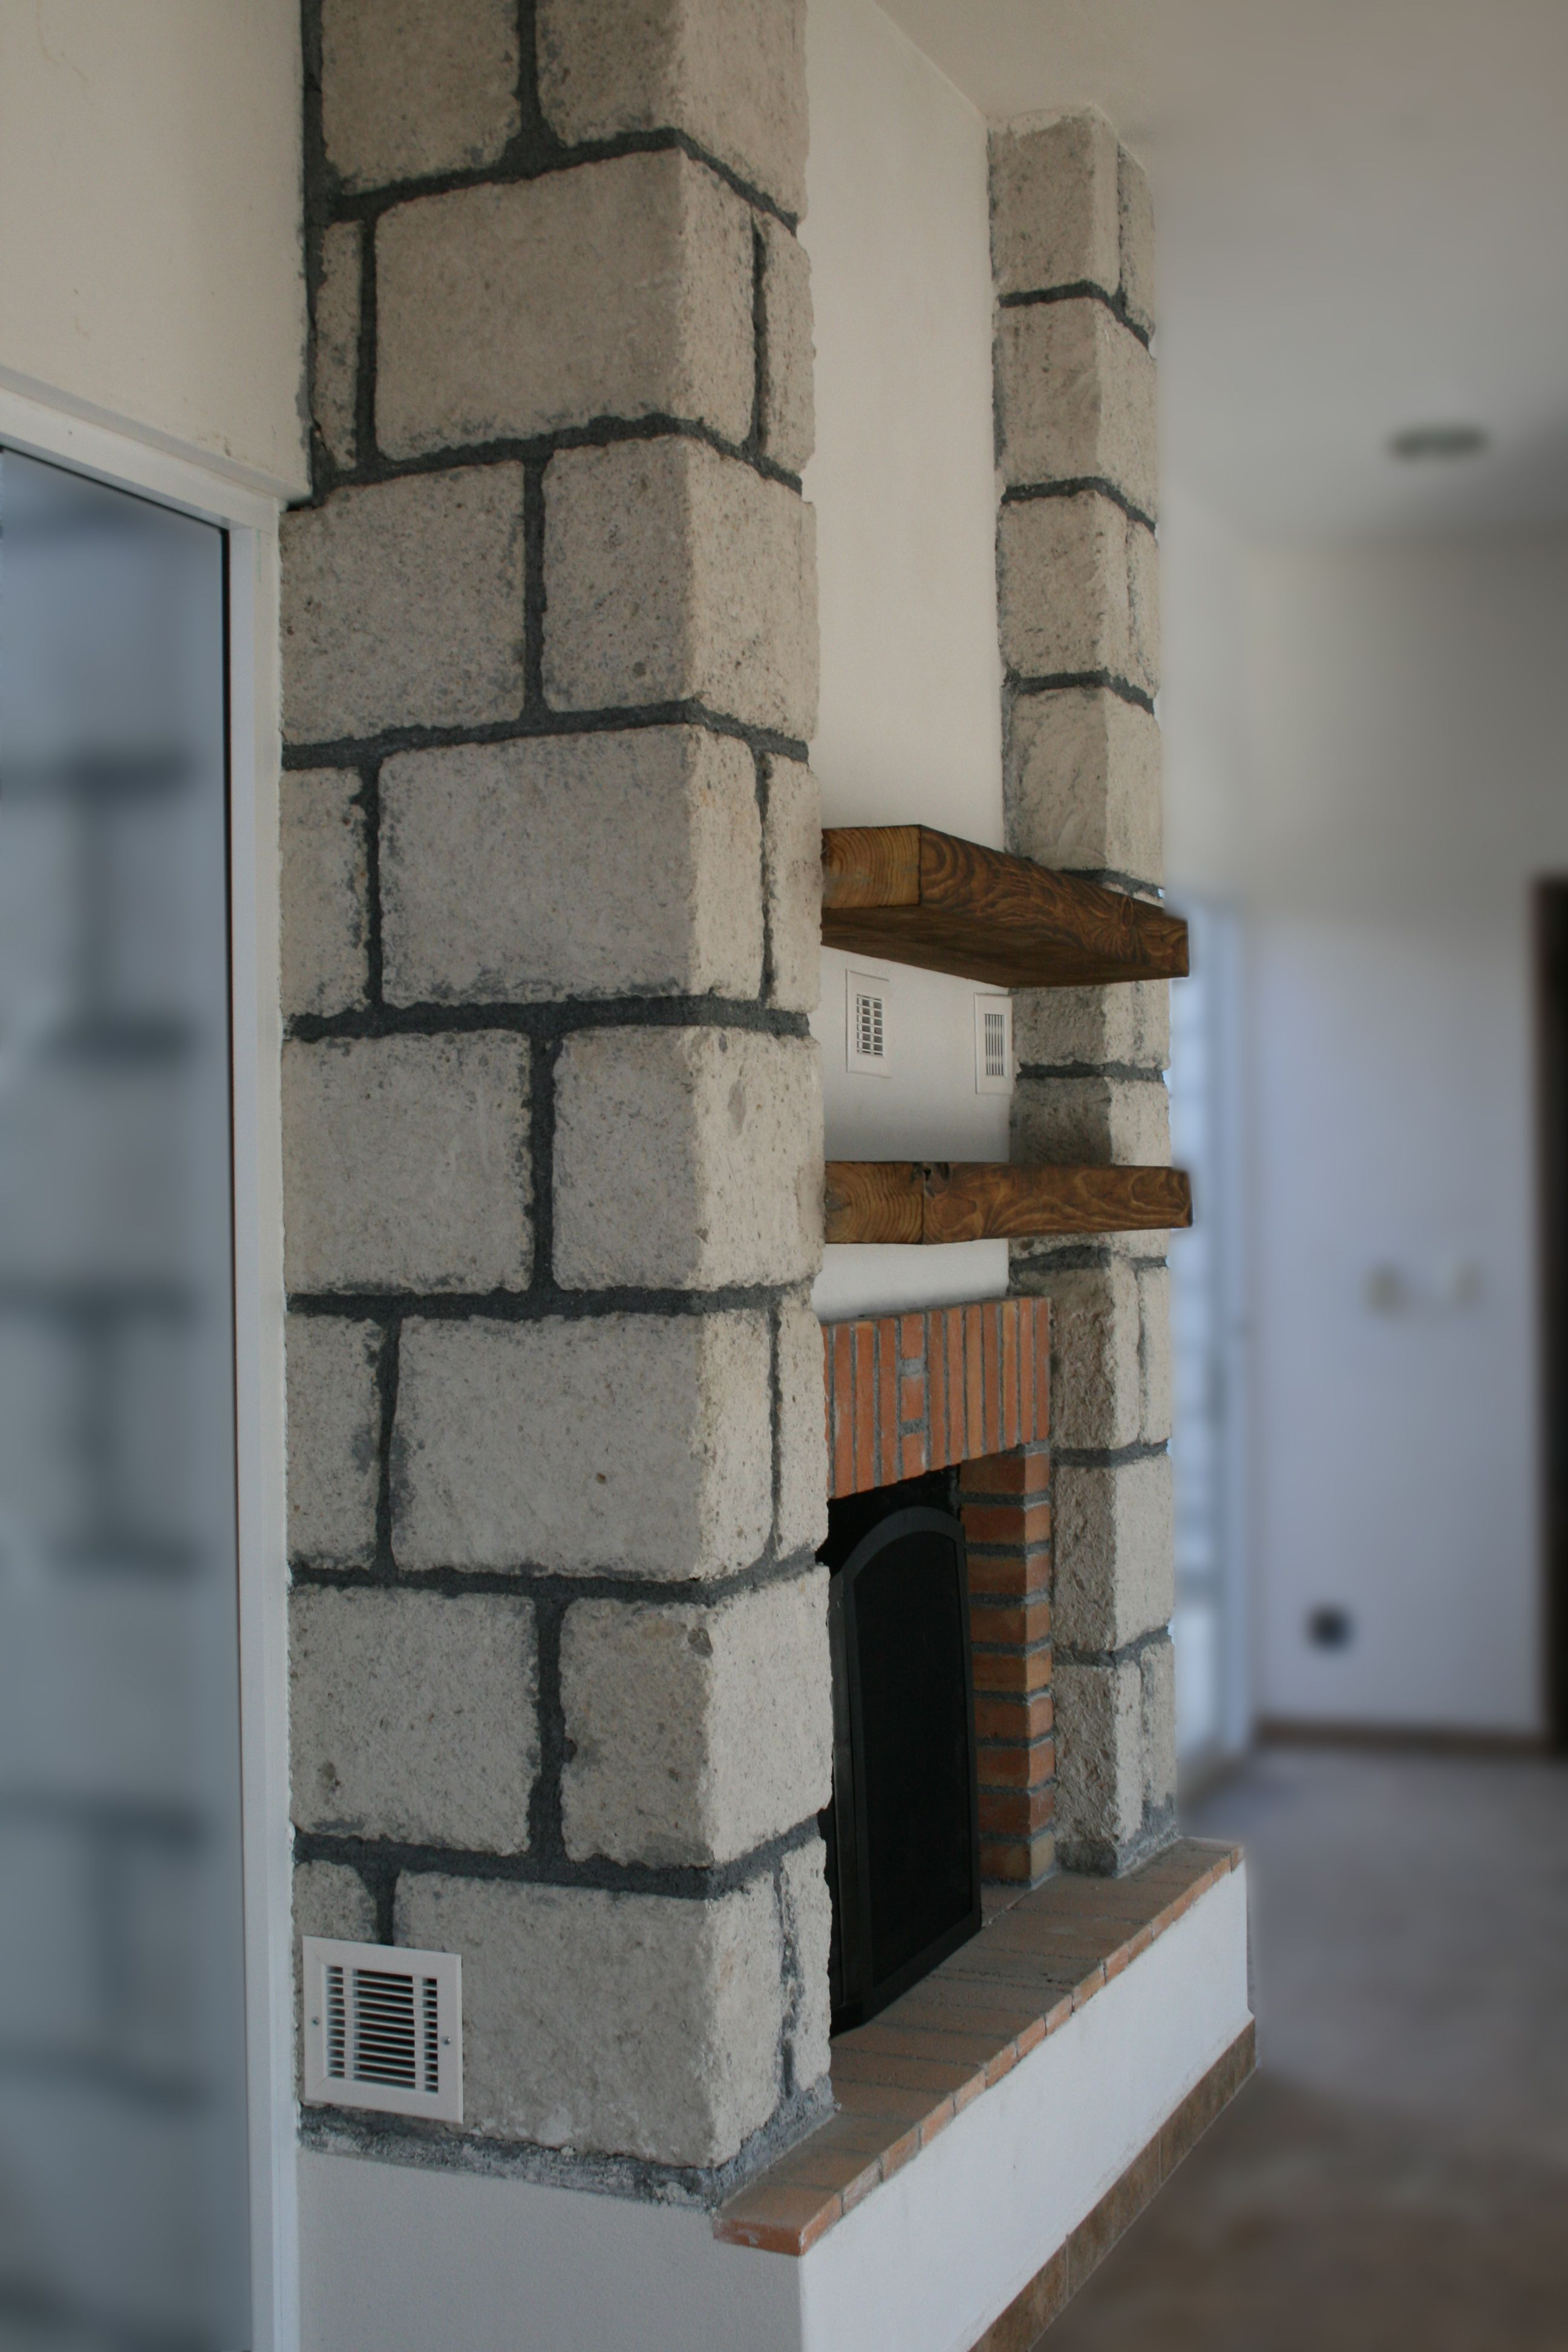 Beautiful mexican fireplace chimenea recubierta con - Chimeneas de ladrillo ...